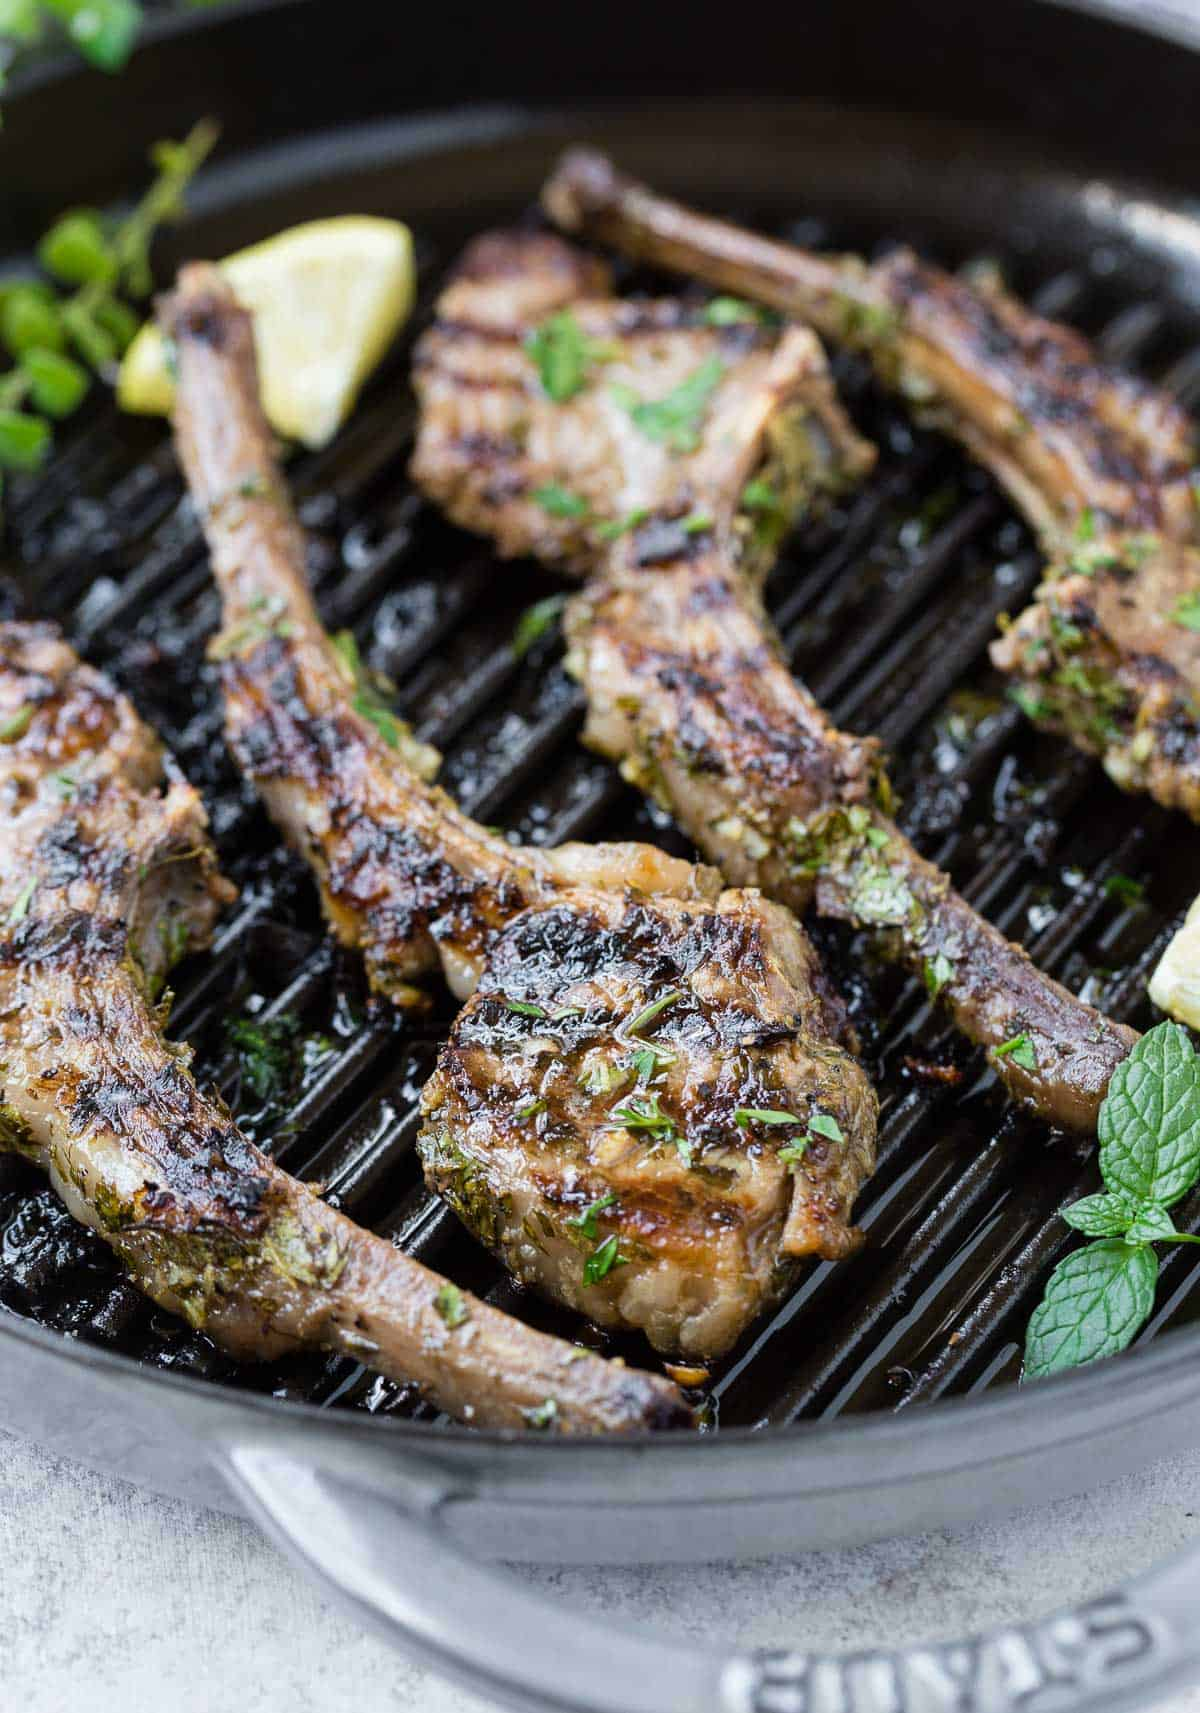 Cooked lamb on a grill pan with fresh herbs and lemon.